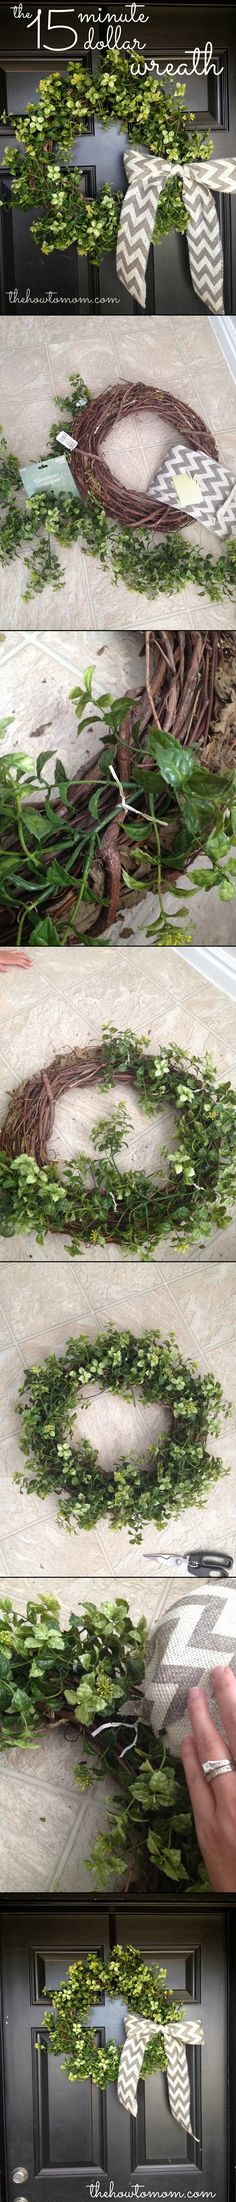 Easy and Beautiful $1 Wreath.